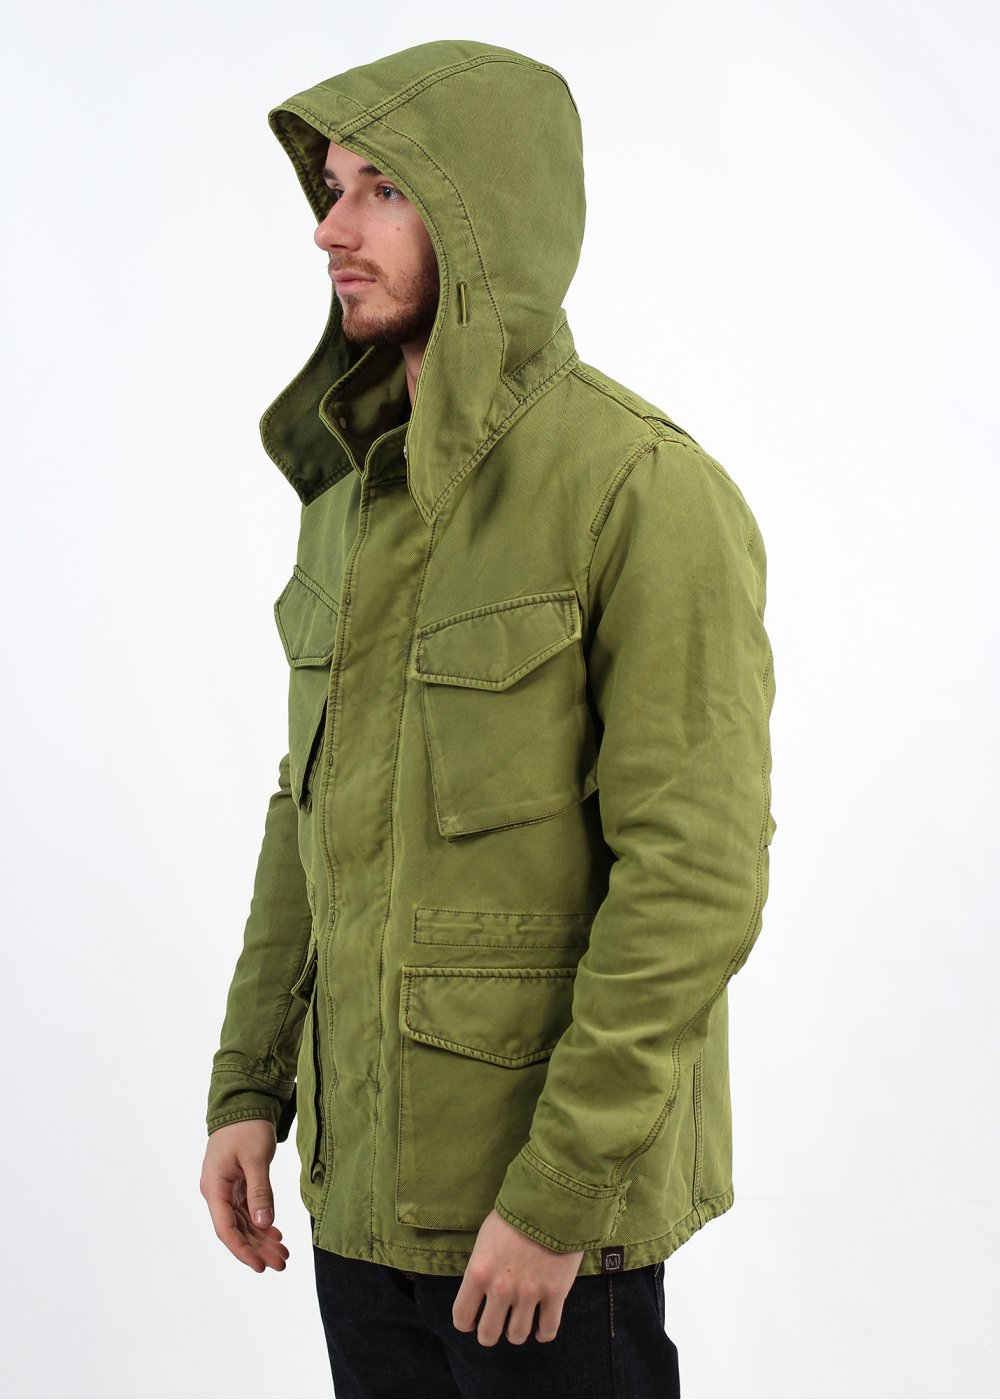 dating m65 jacket Singles & dating weddings food & drink maybe if you just soak your jacket in handwashing liquid for a couple can i wash my m 65 field jacket.